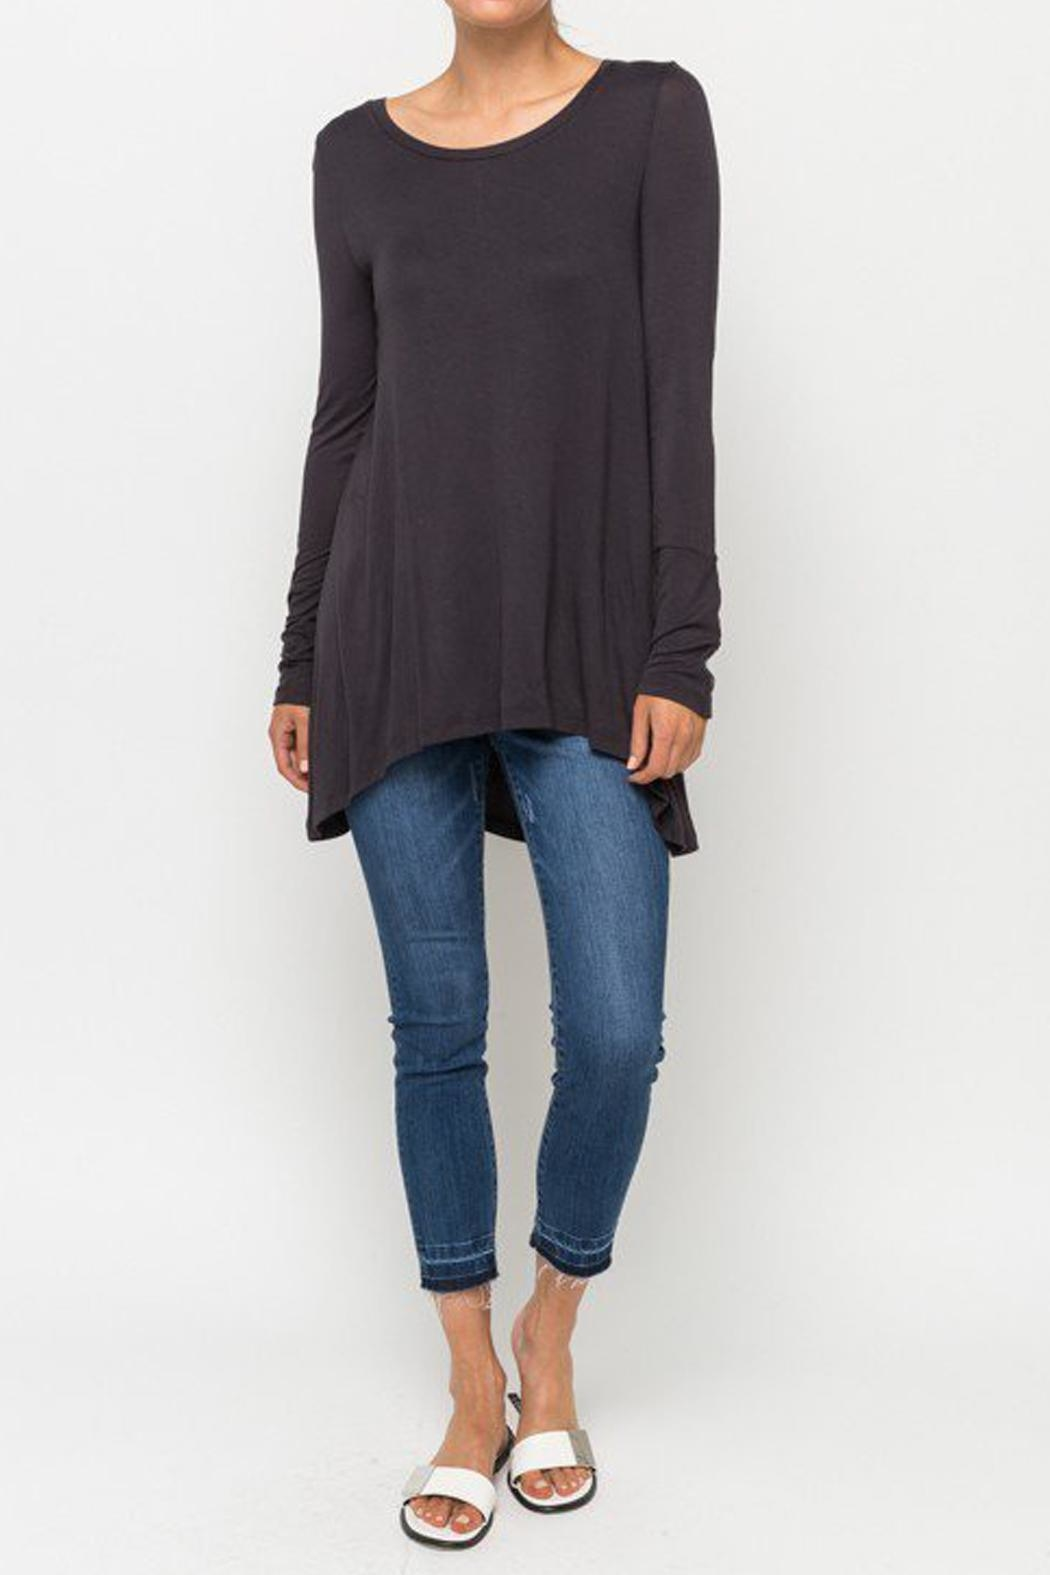 Mystree Basic Charcoal Top - Back Cropped Image